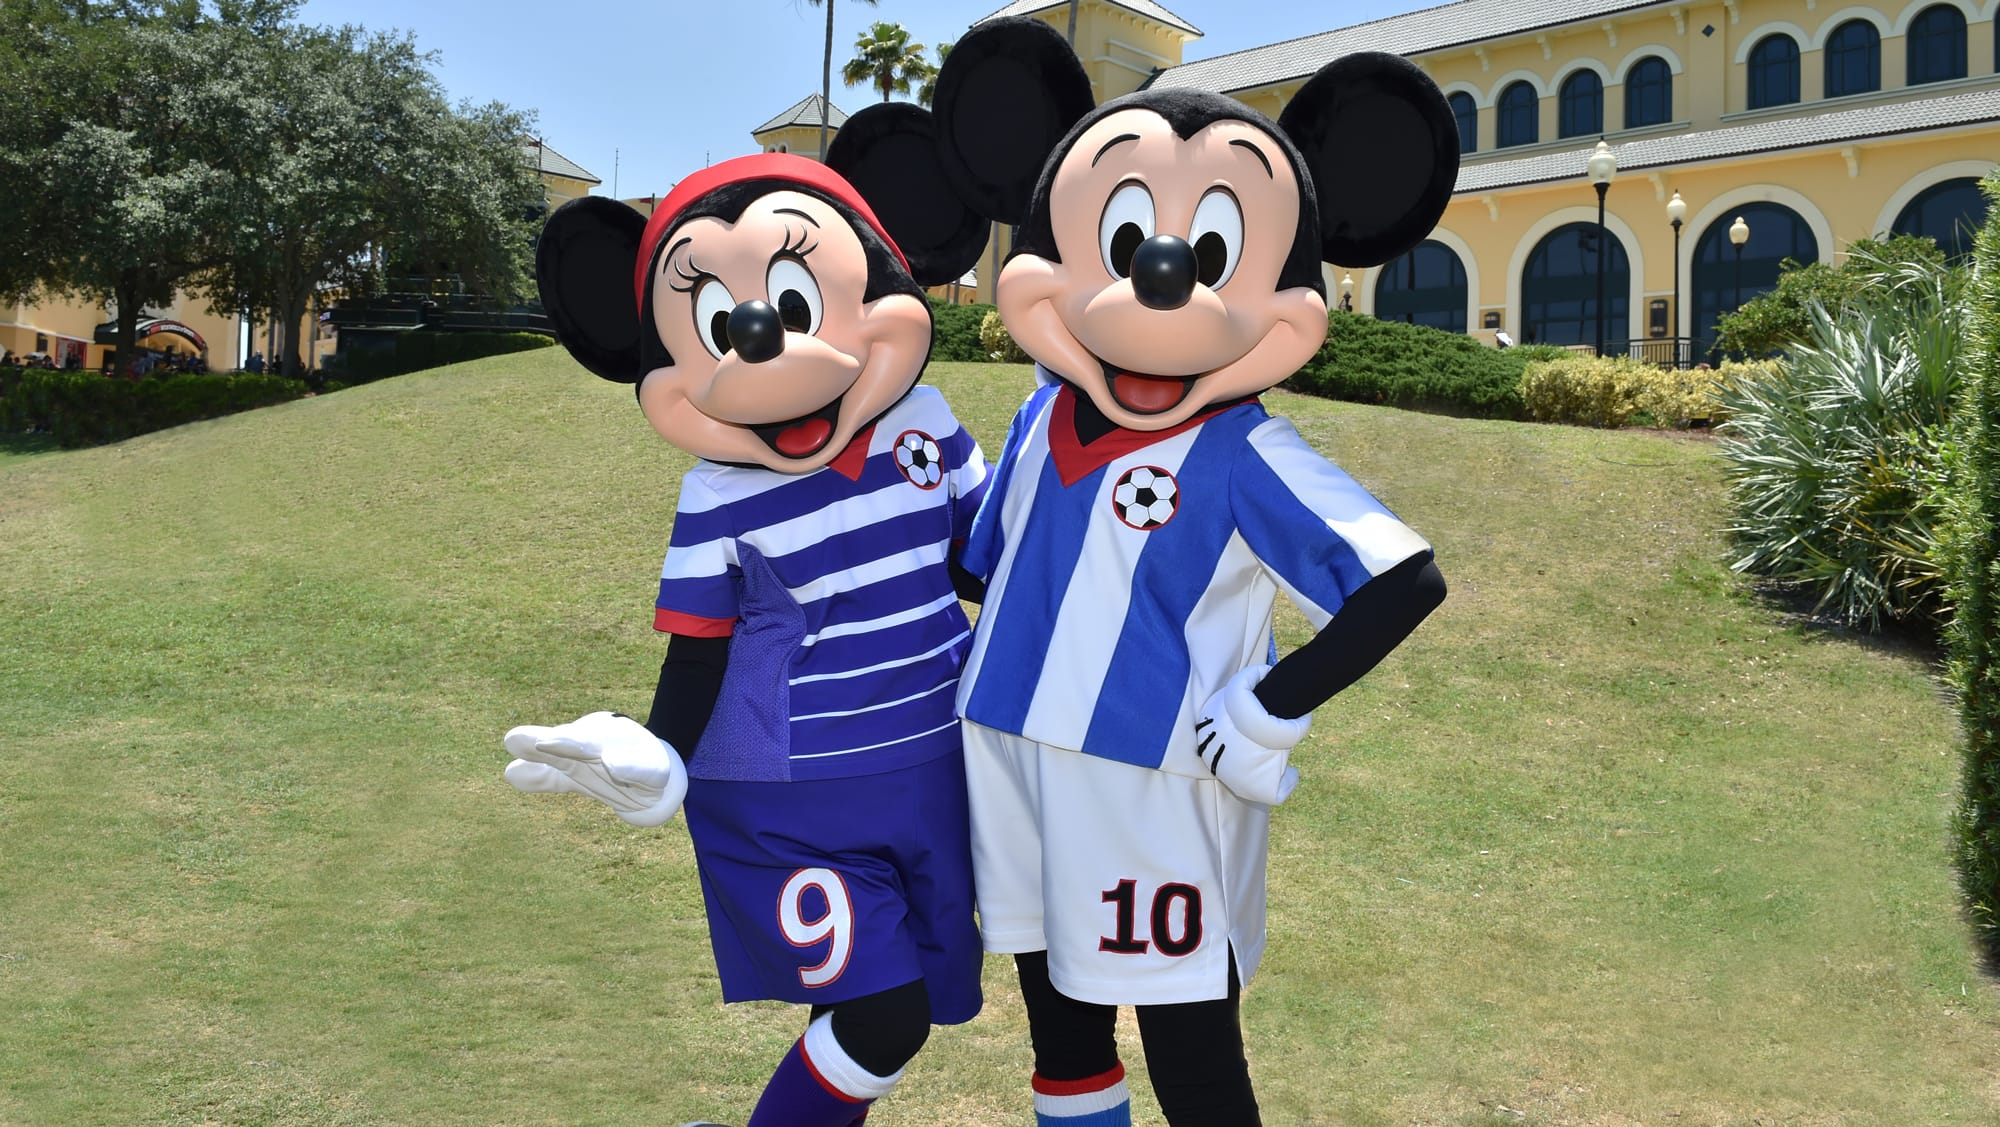 Minnie Mouse and Mickey Mouse pose in soccer uniforms on the grass at ESPN Wide World of Sports Complex